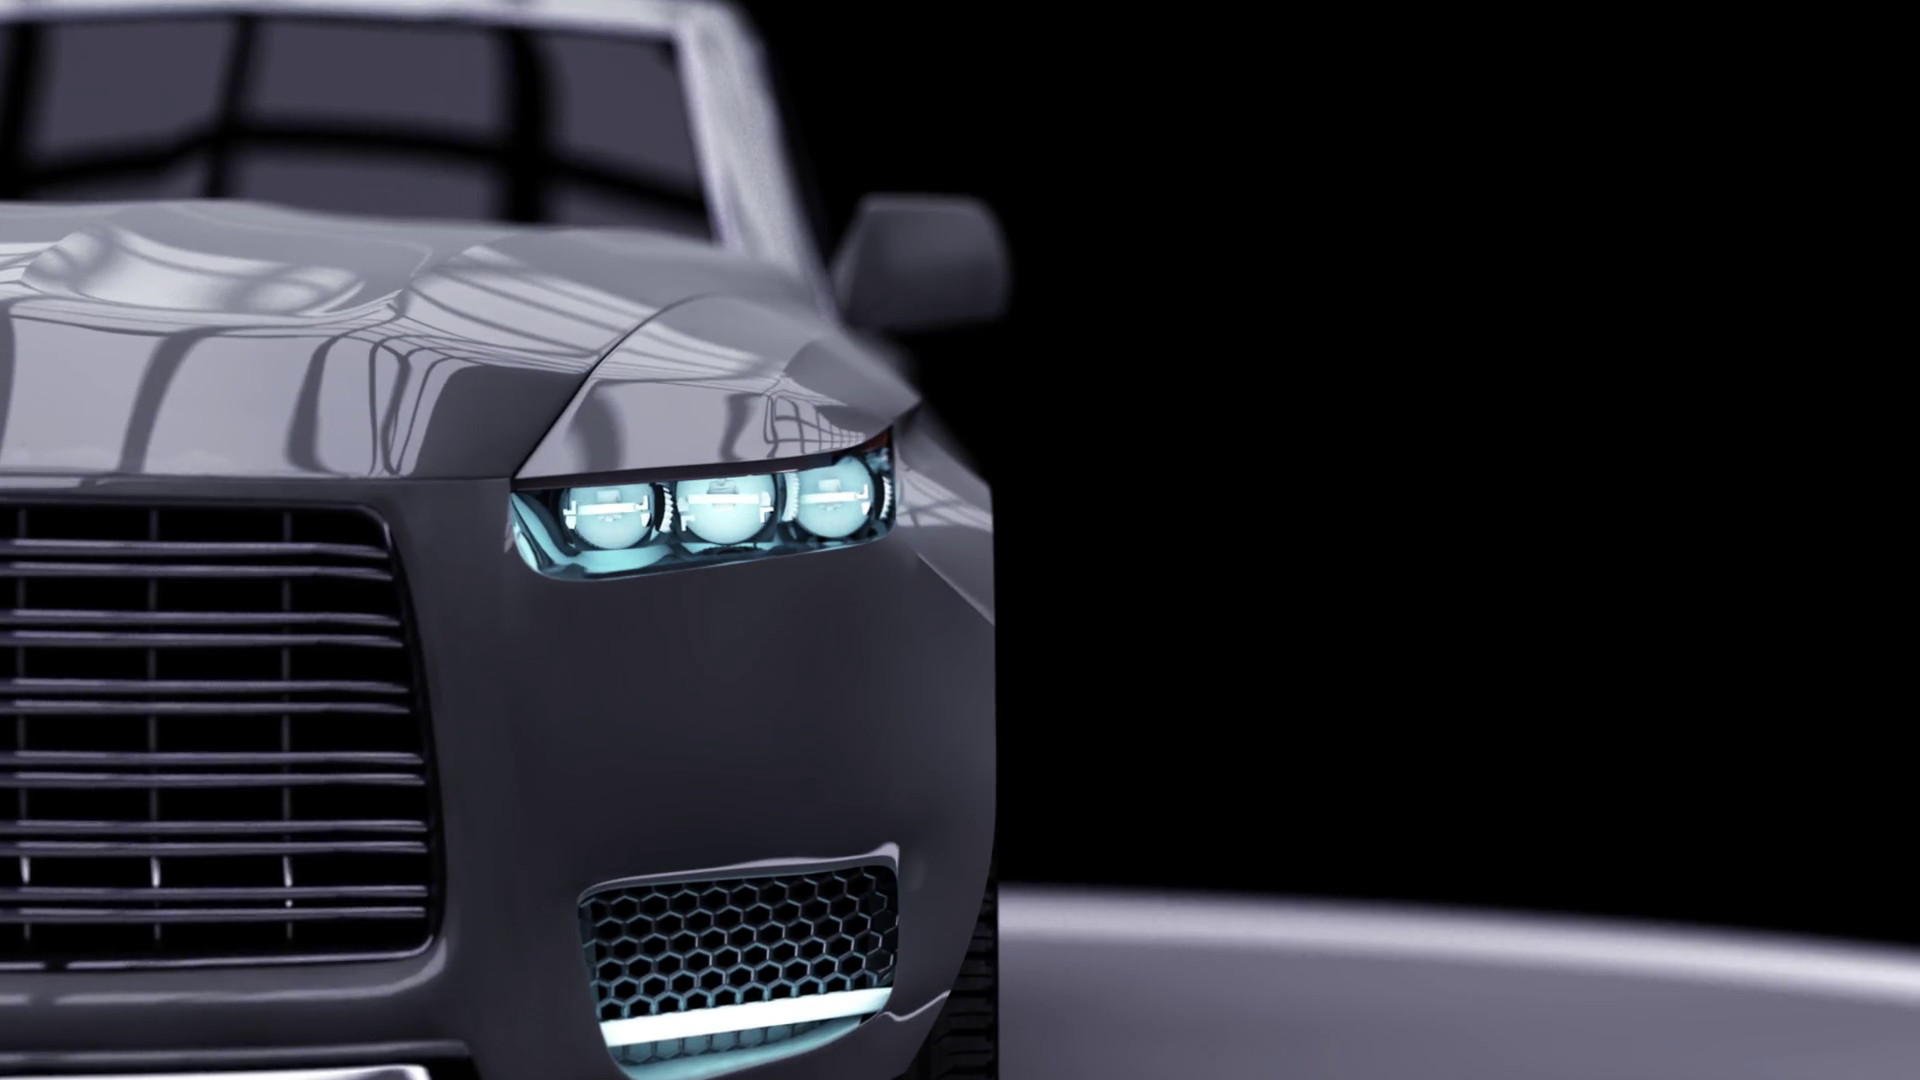 1920x1080 Modern car, 3D car animation on a black background the camera zooms Motion  Background - Storyblocks Video